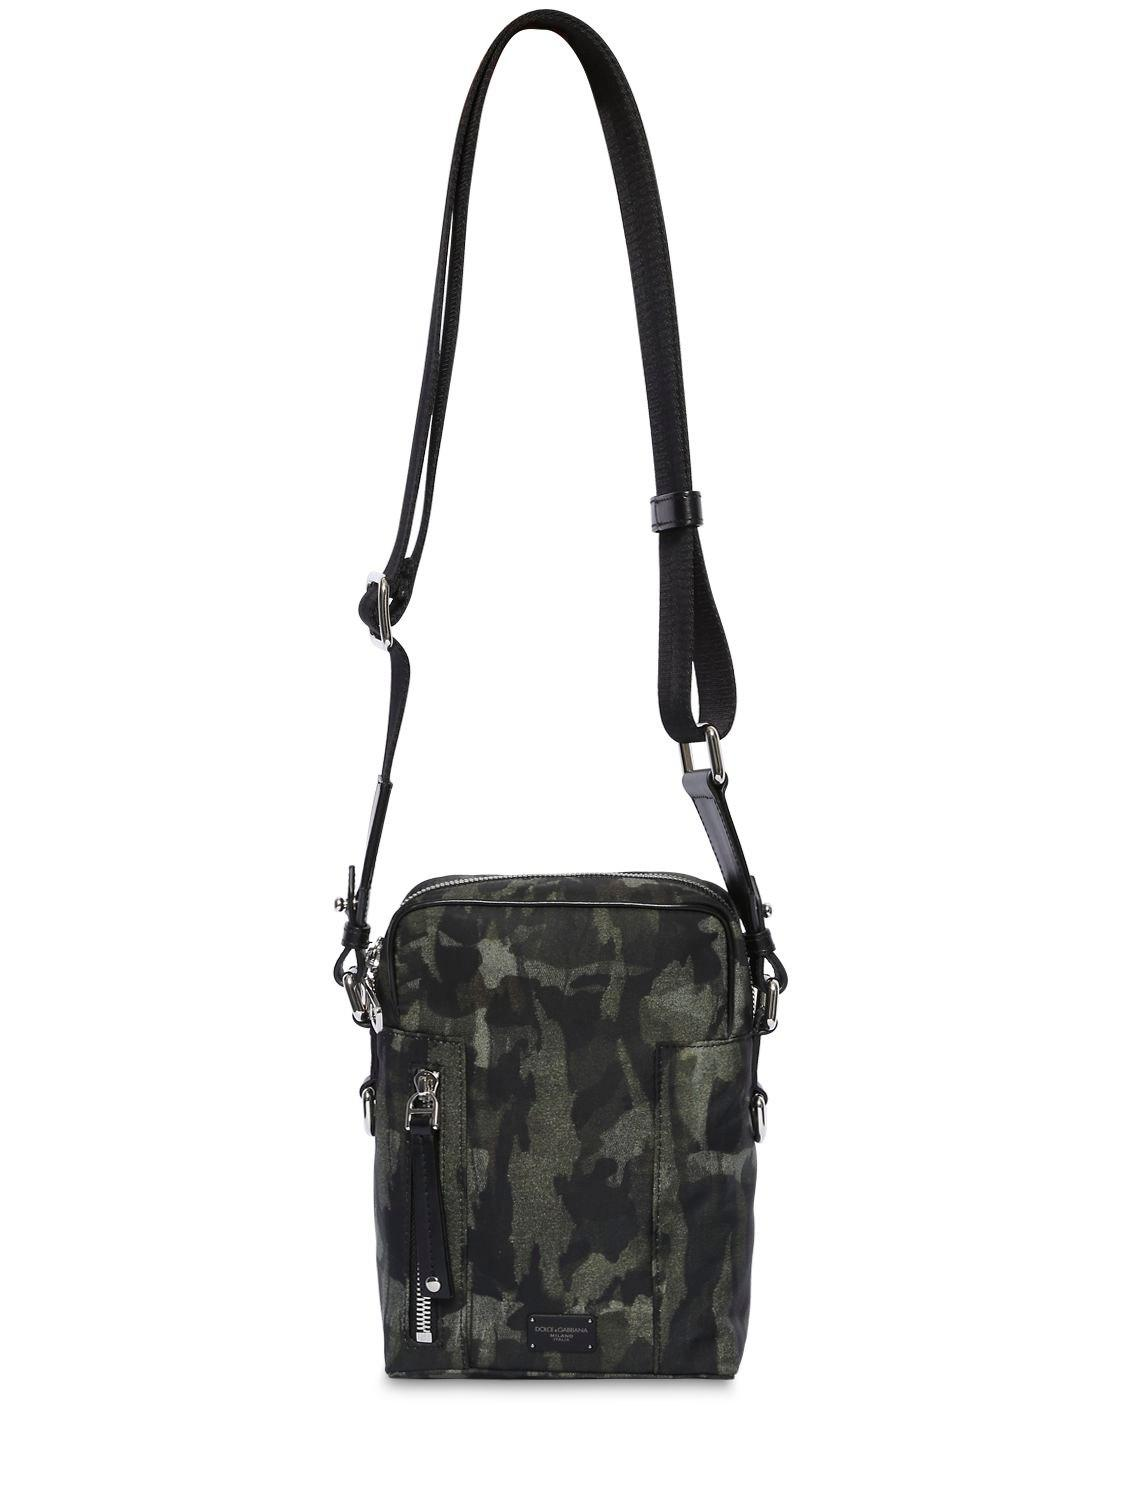 Dolce   Gabbana Camouflage Nylon Crossbody Bag in Black for Men - Lyst 8c623a7c1bcc7